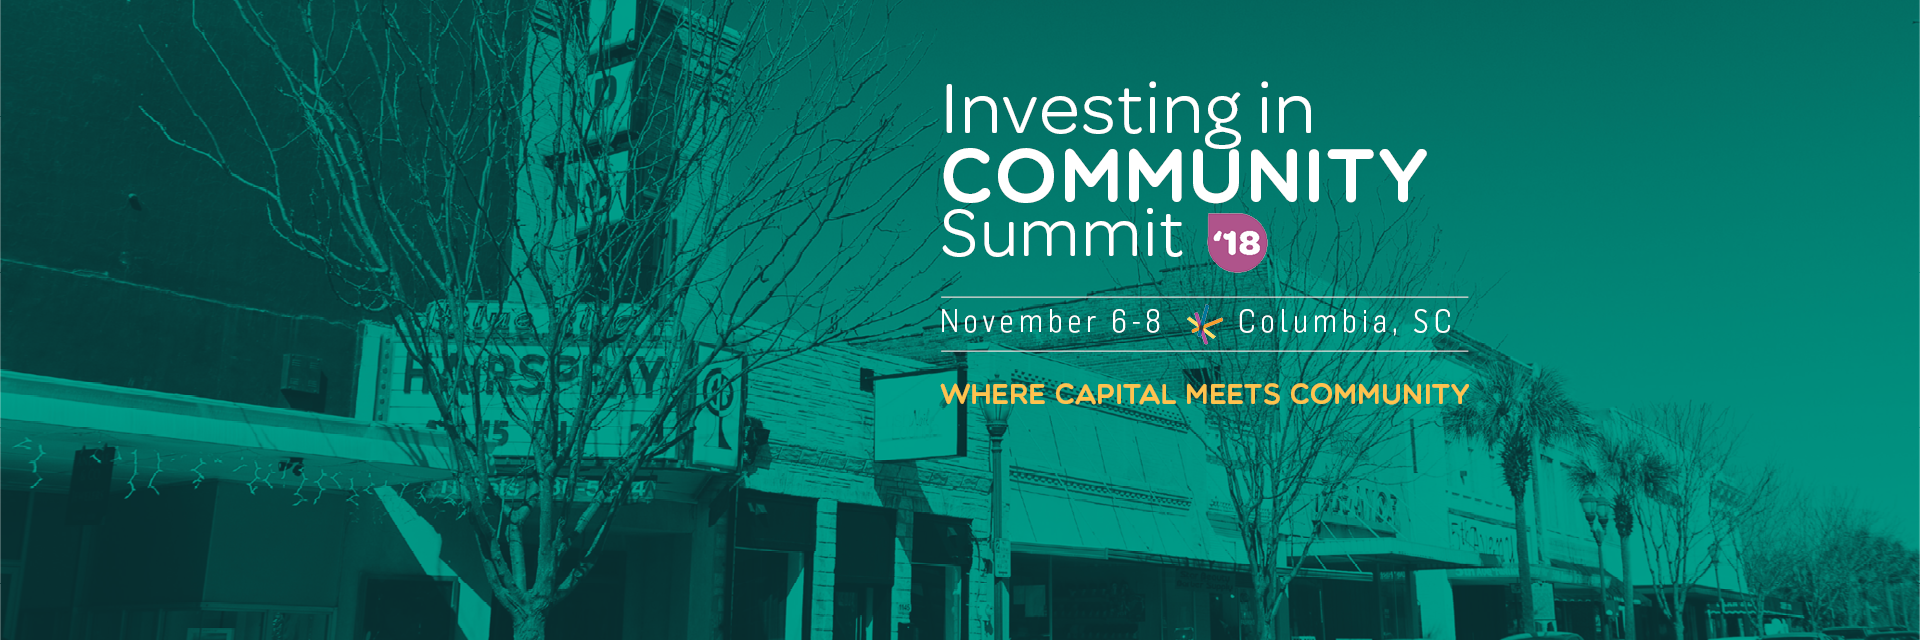 Investing in Community Summit 2018